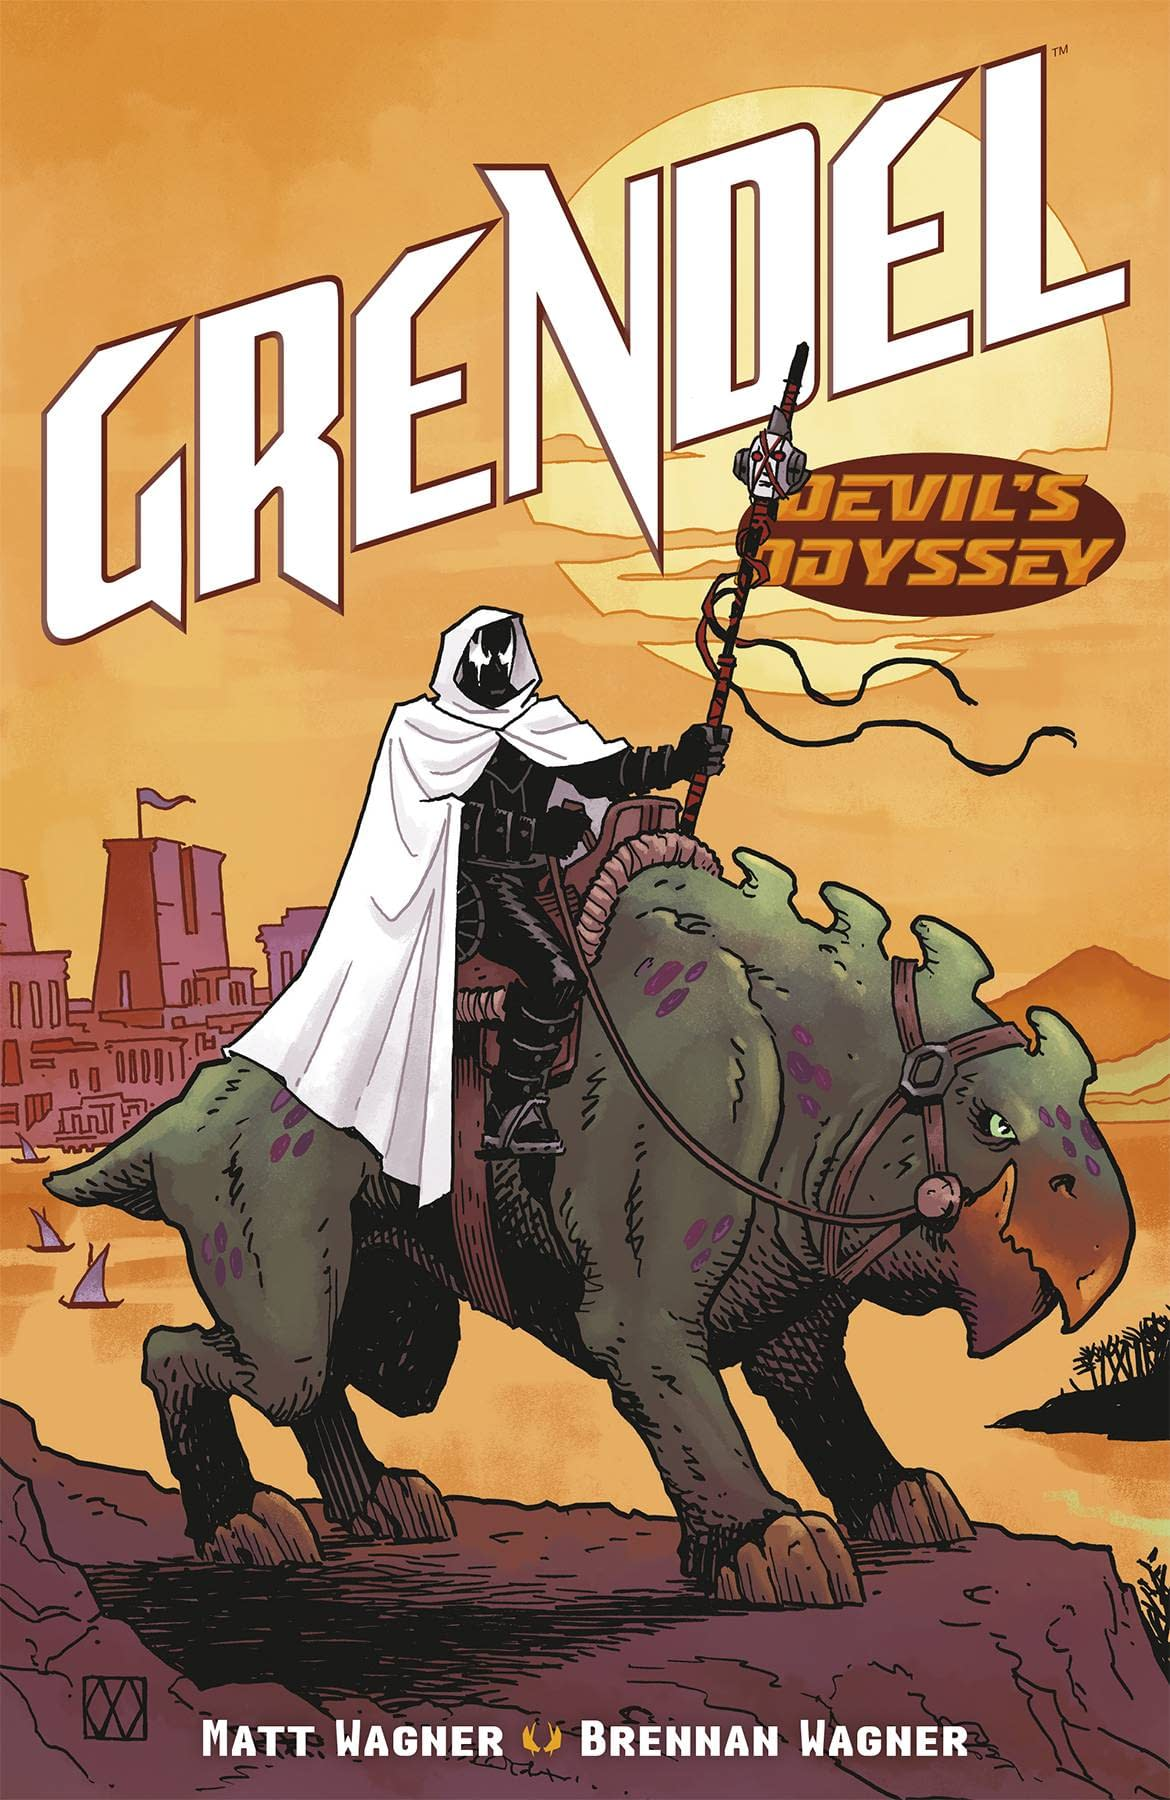 GRENDEL DEVILS ODYSSEY #6 (OF 8) CVR A WAGNER (RES) (MR)